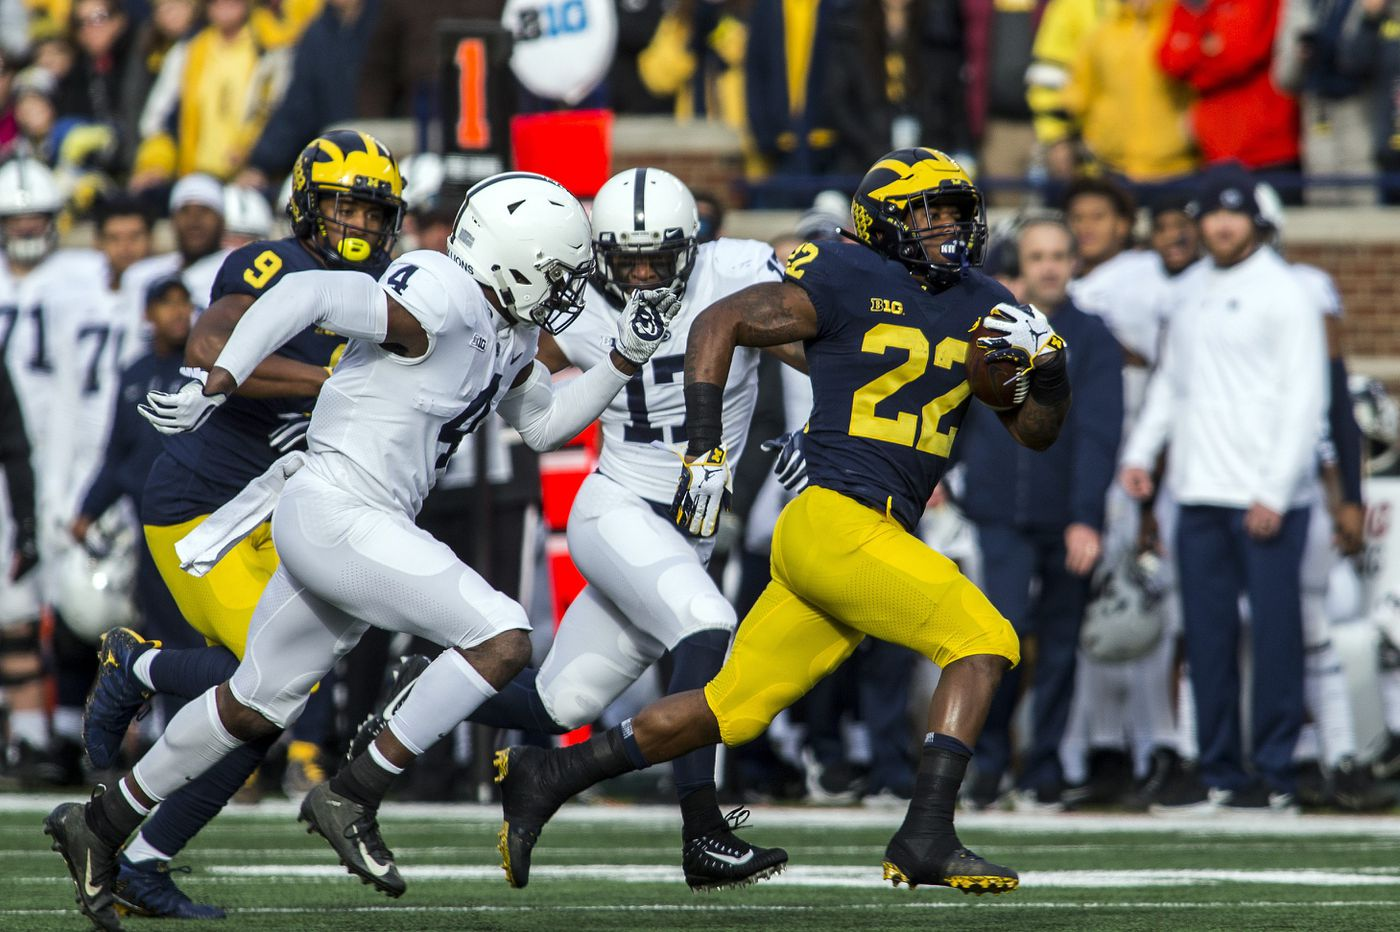 Penn State working to regain confidence heading into Saturday's Wisconsin matchup